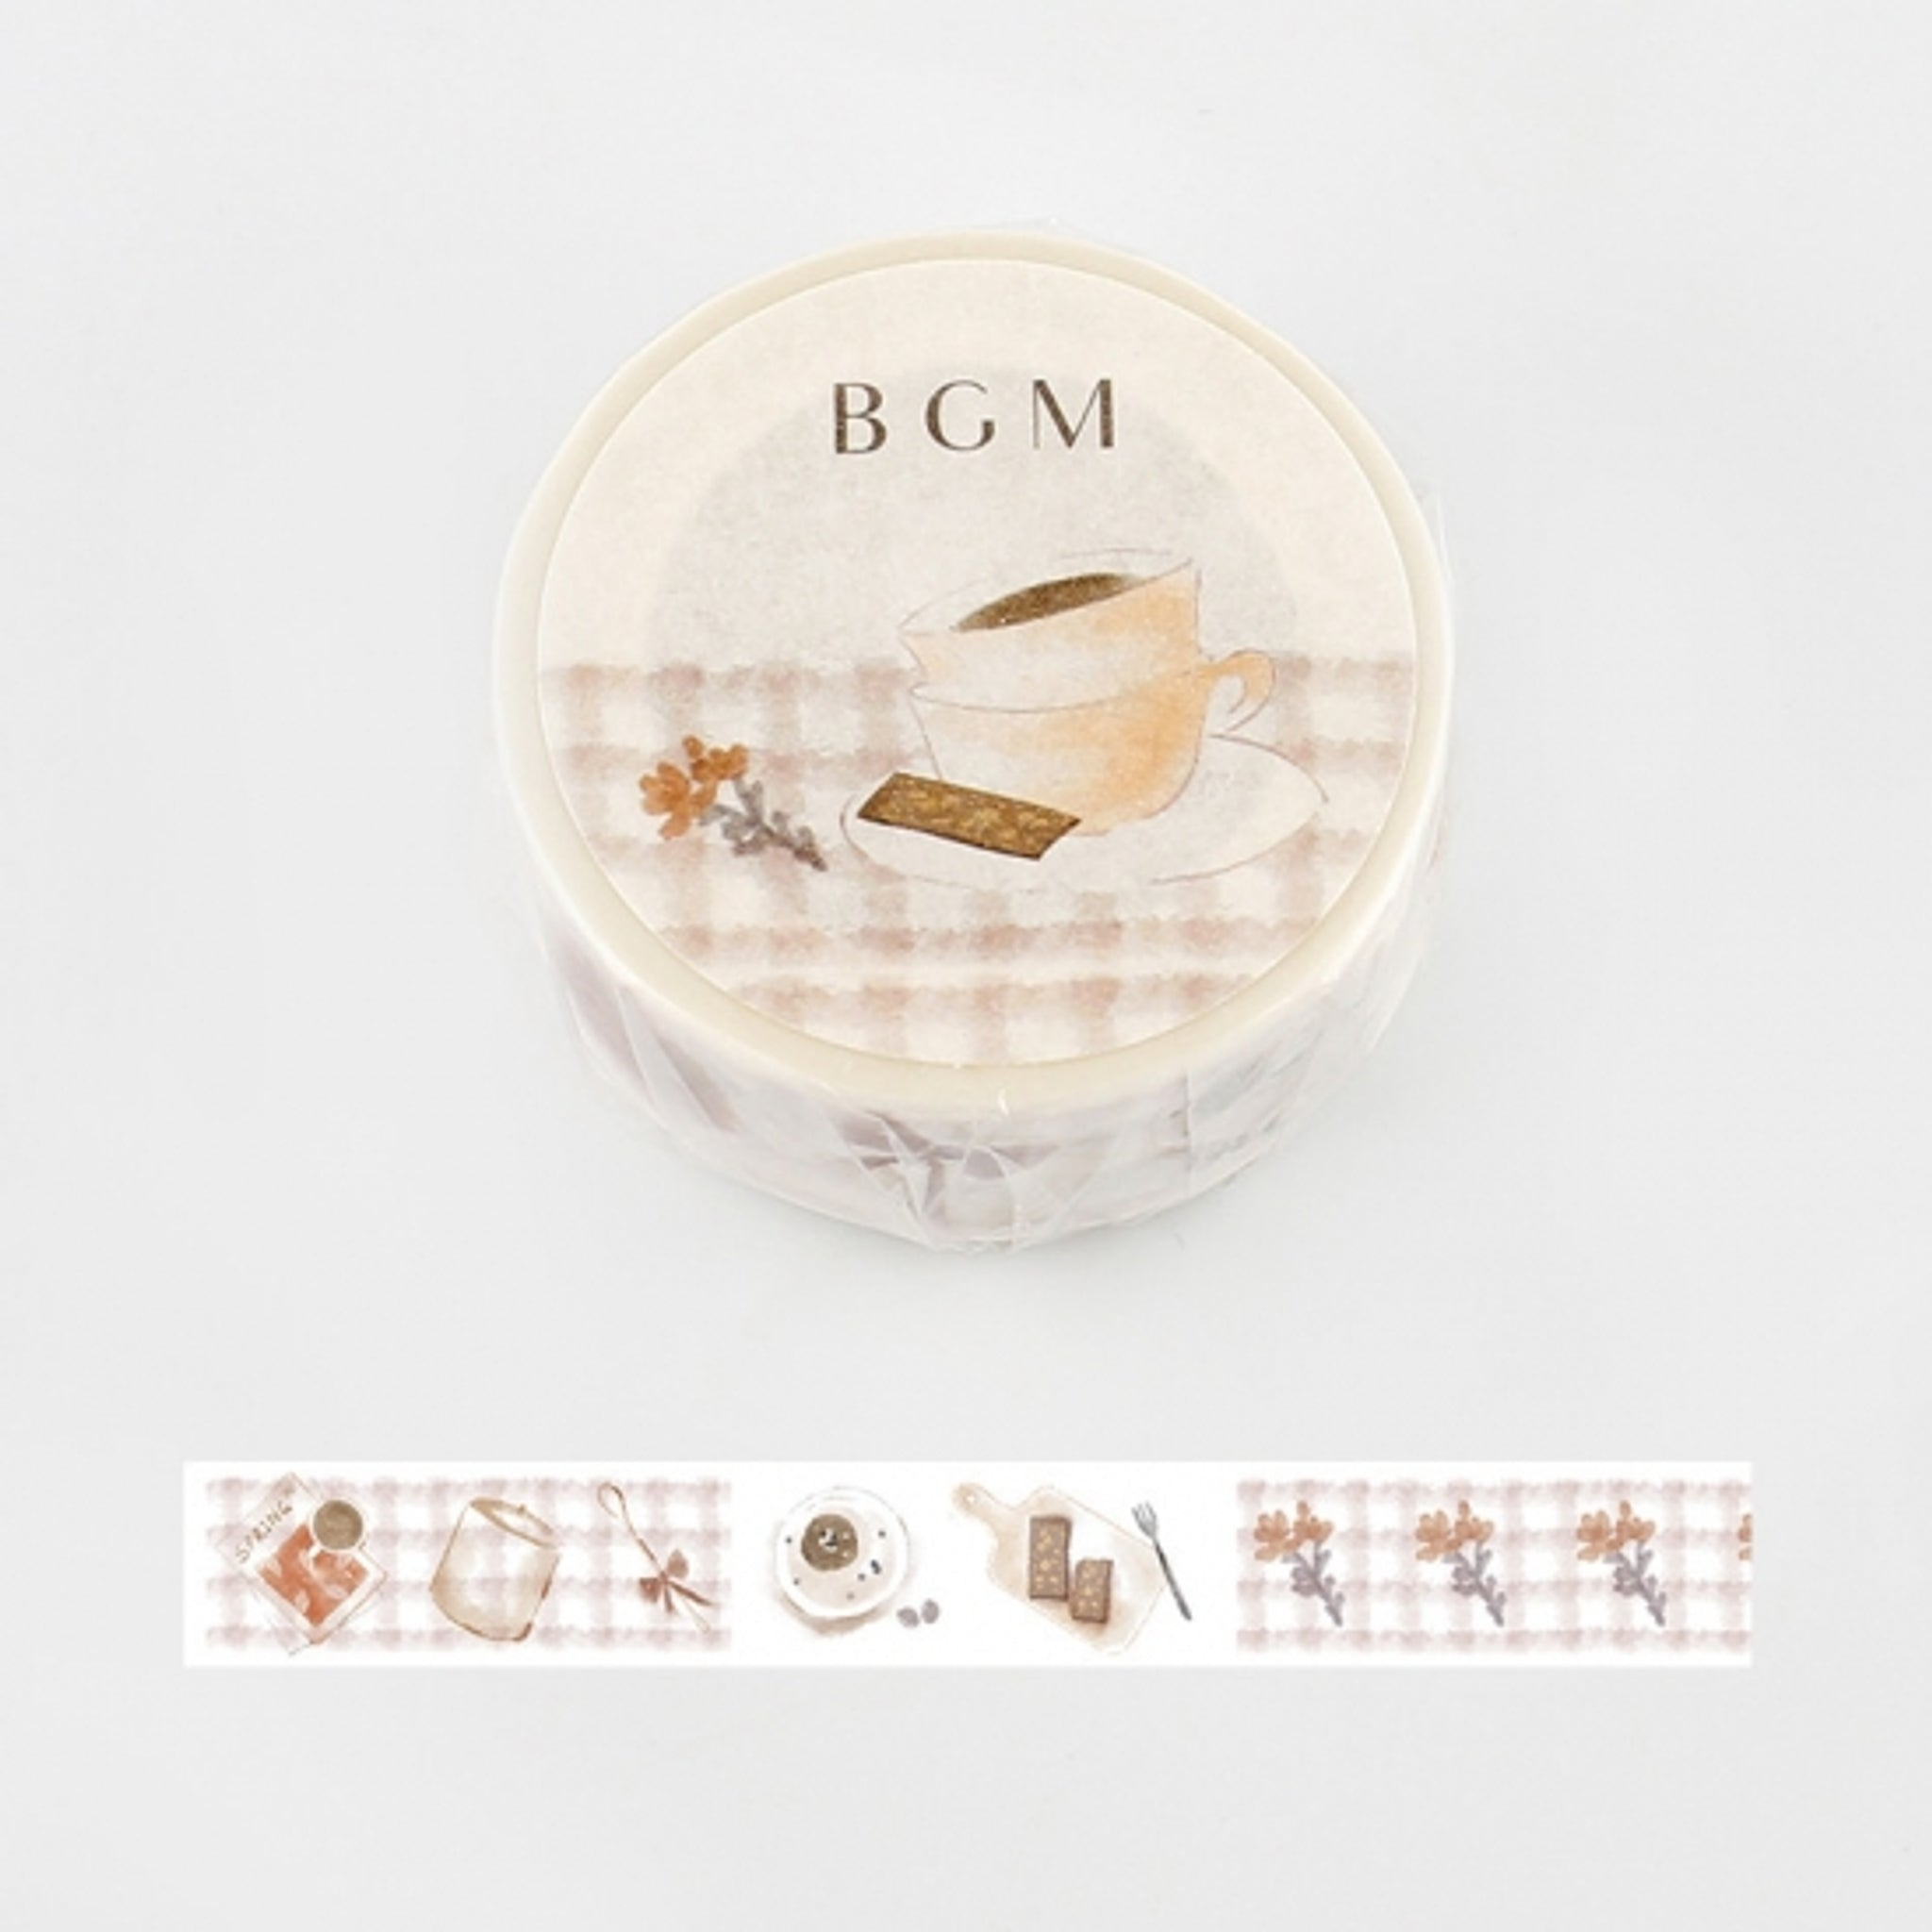 BGM Coffee Chocolate Washi Tape